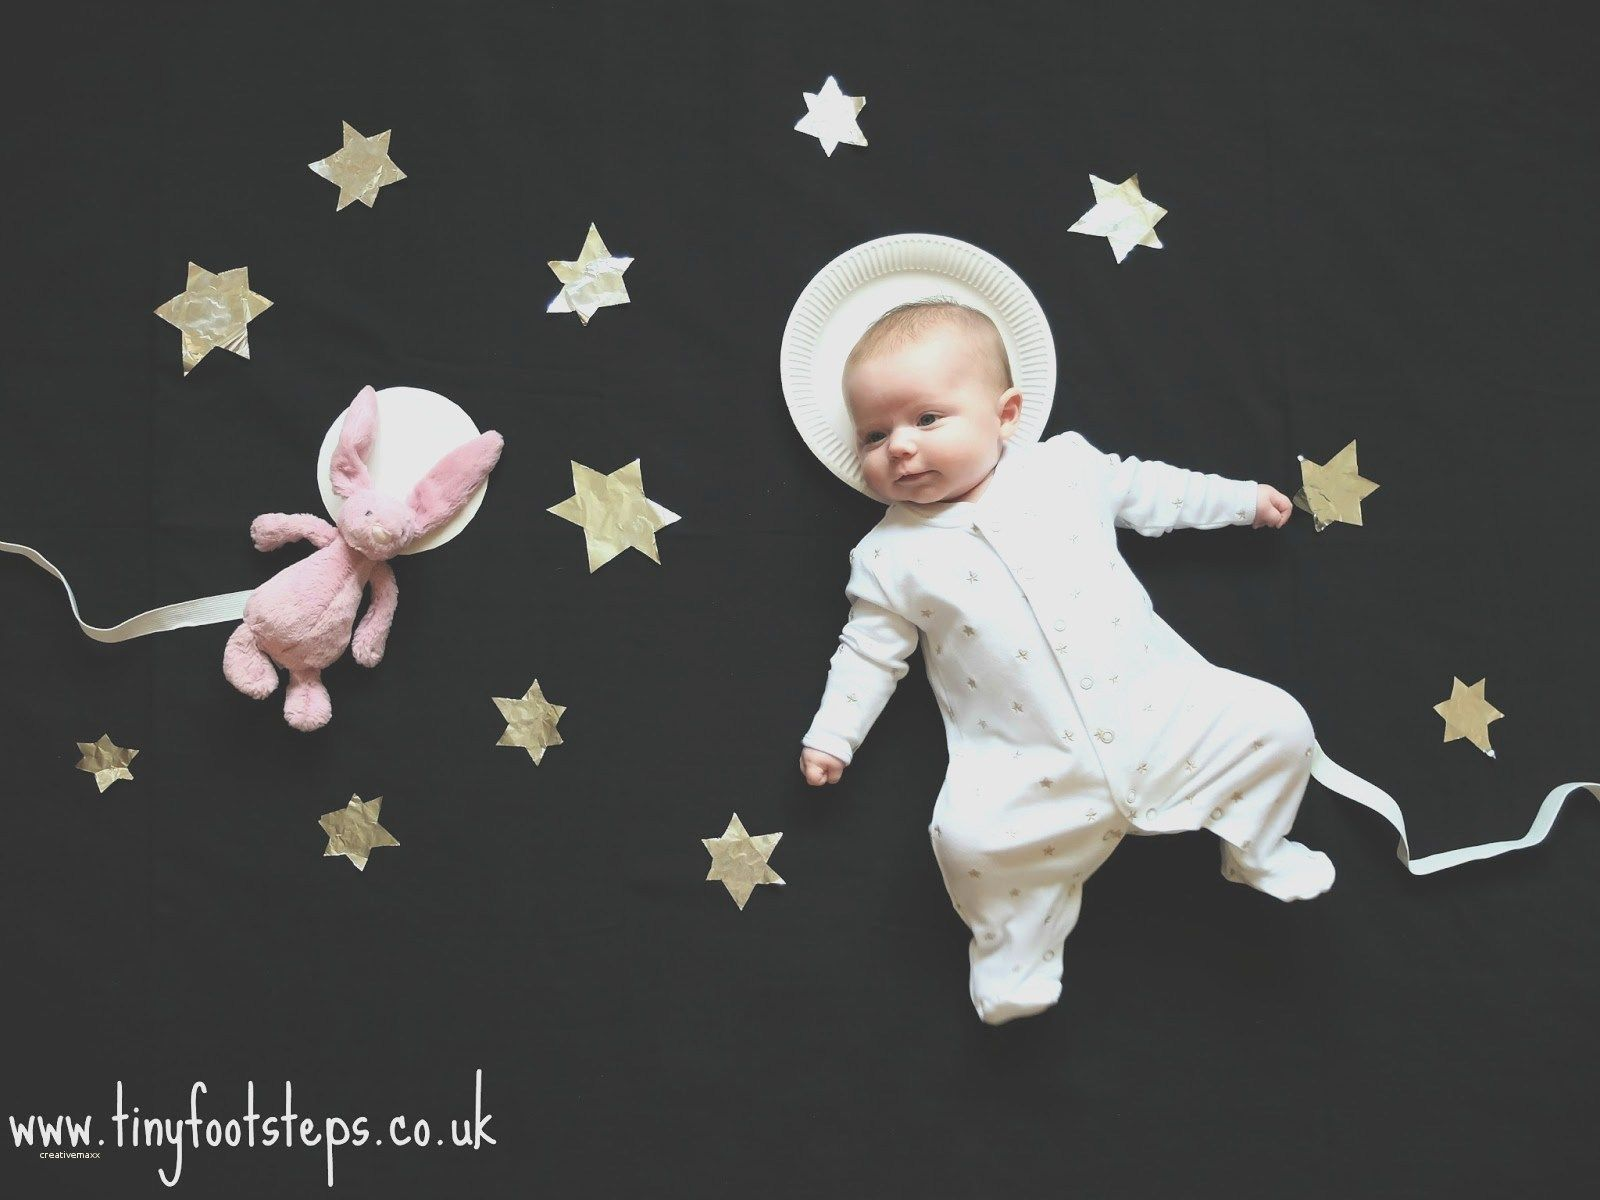 Home newborn photography ideas lovely home newborn photography ideas four generations shoot newborn photos hands mother